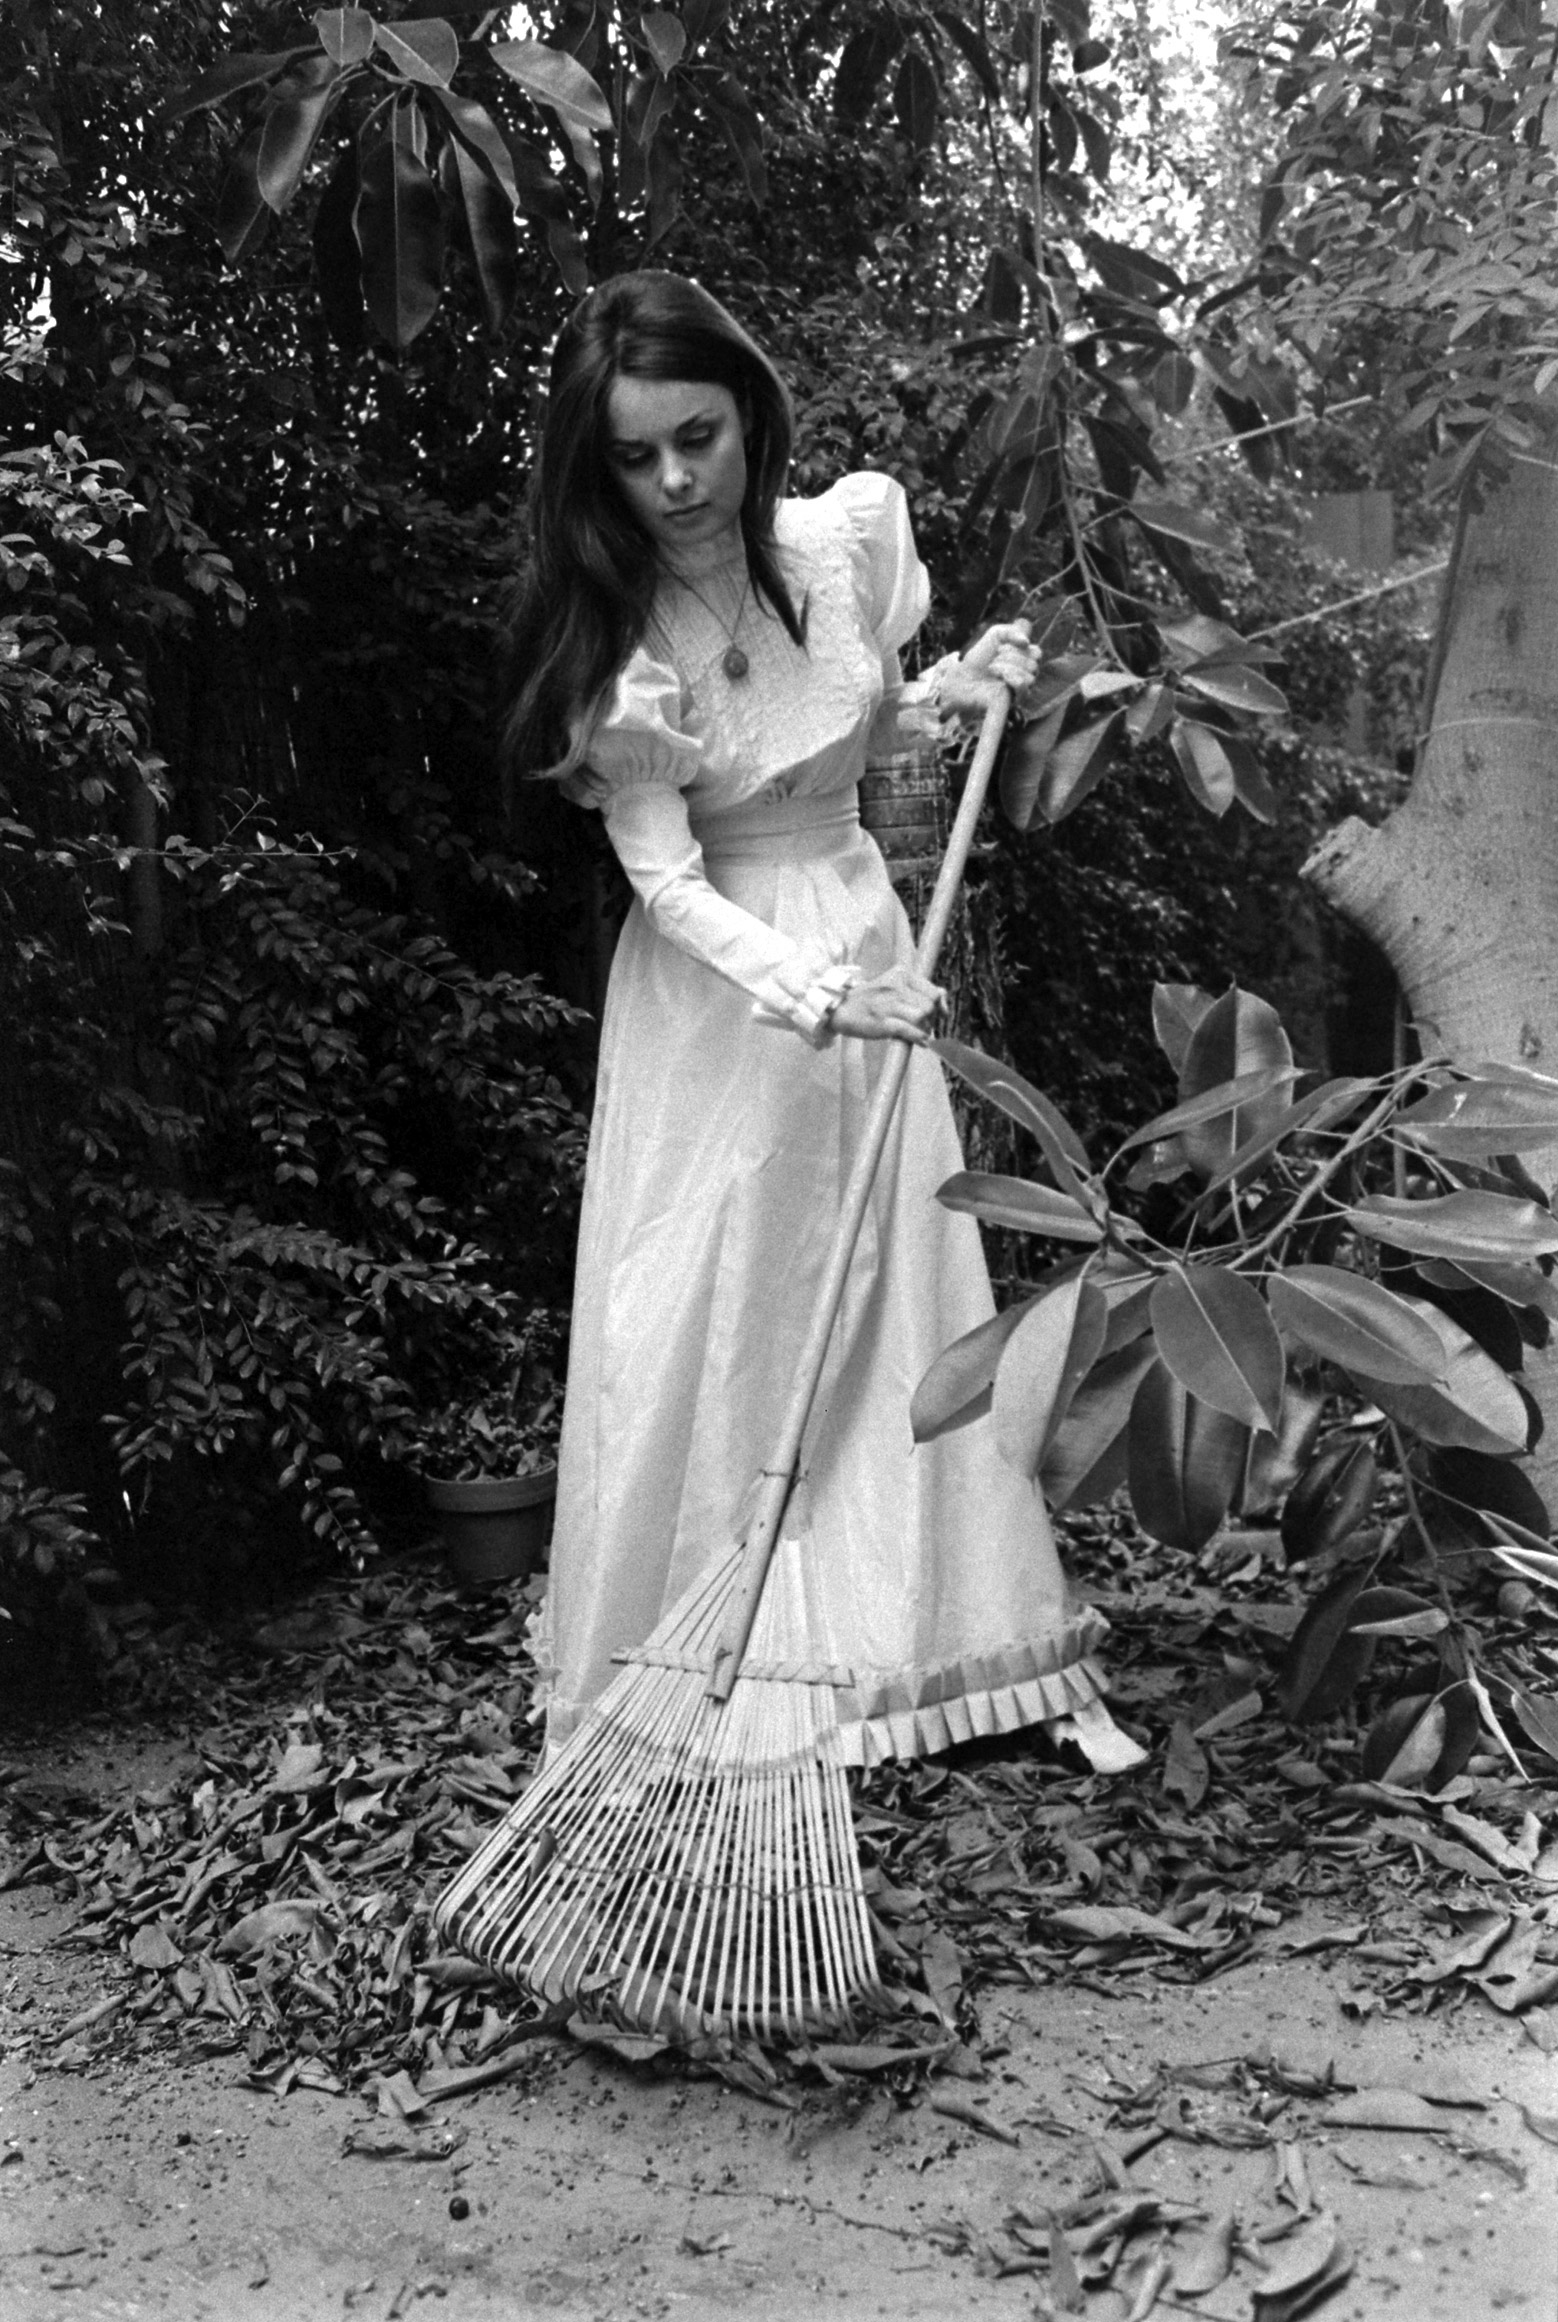 Caption from LIFE. A lady author must: commune with nature. There isn't an awful lot of nature to commune with in Hollywood, but Jeanne does her best with a rake and leaves, both borrowed from her apartement house. The Victorian dress is brand-new.